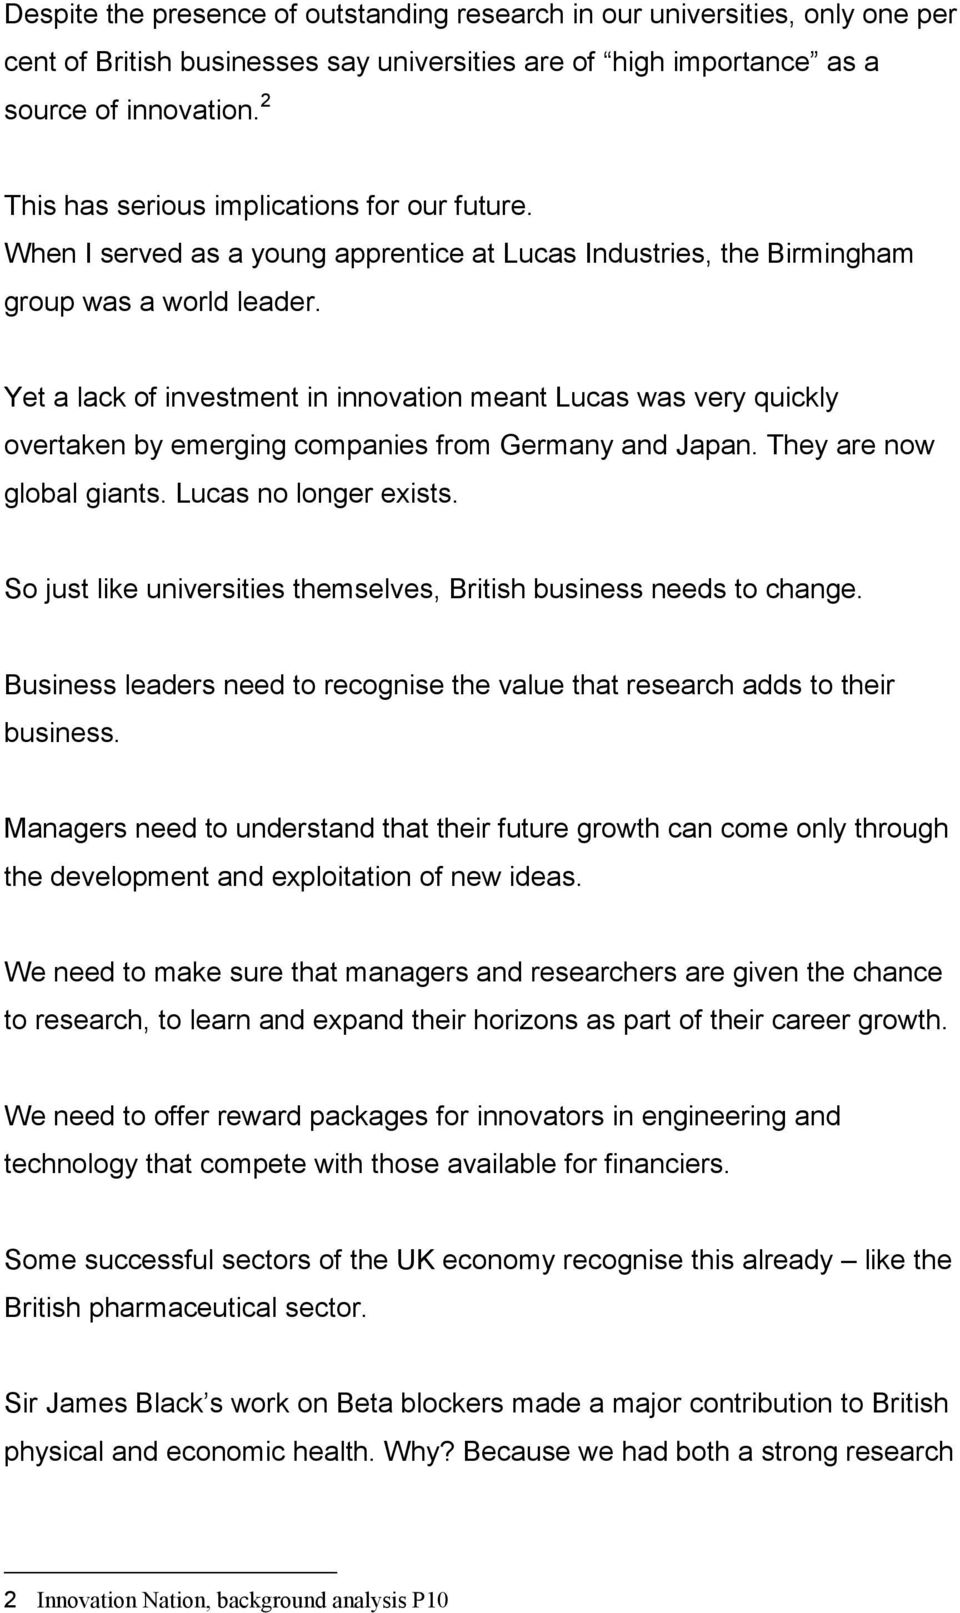 Yet a lack of investment in innovation meant Lucas was very quickly overtaken by emerging companies from Germany and Japan. They are now global giants. Lucas no longer exists.